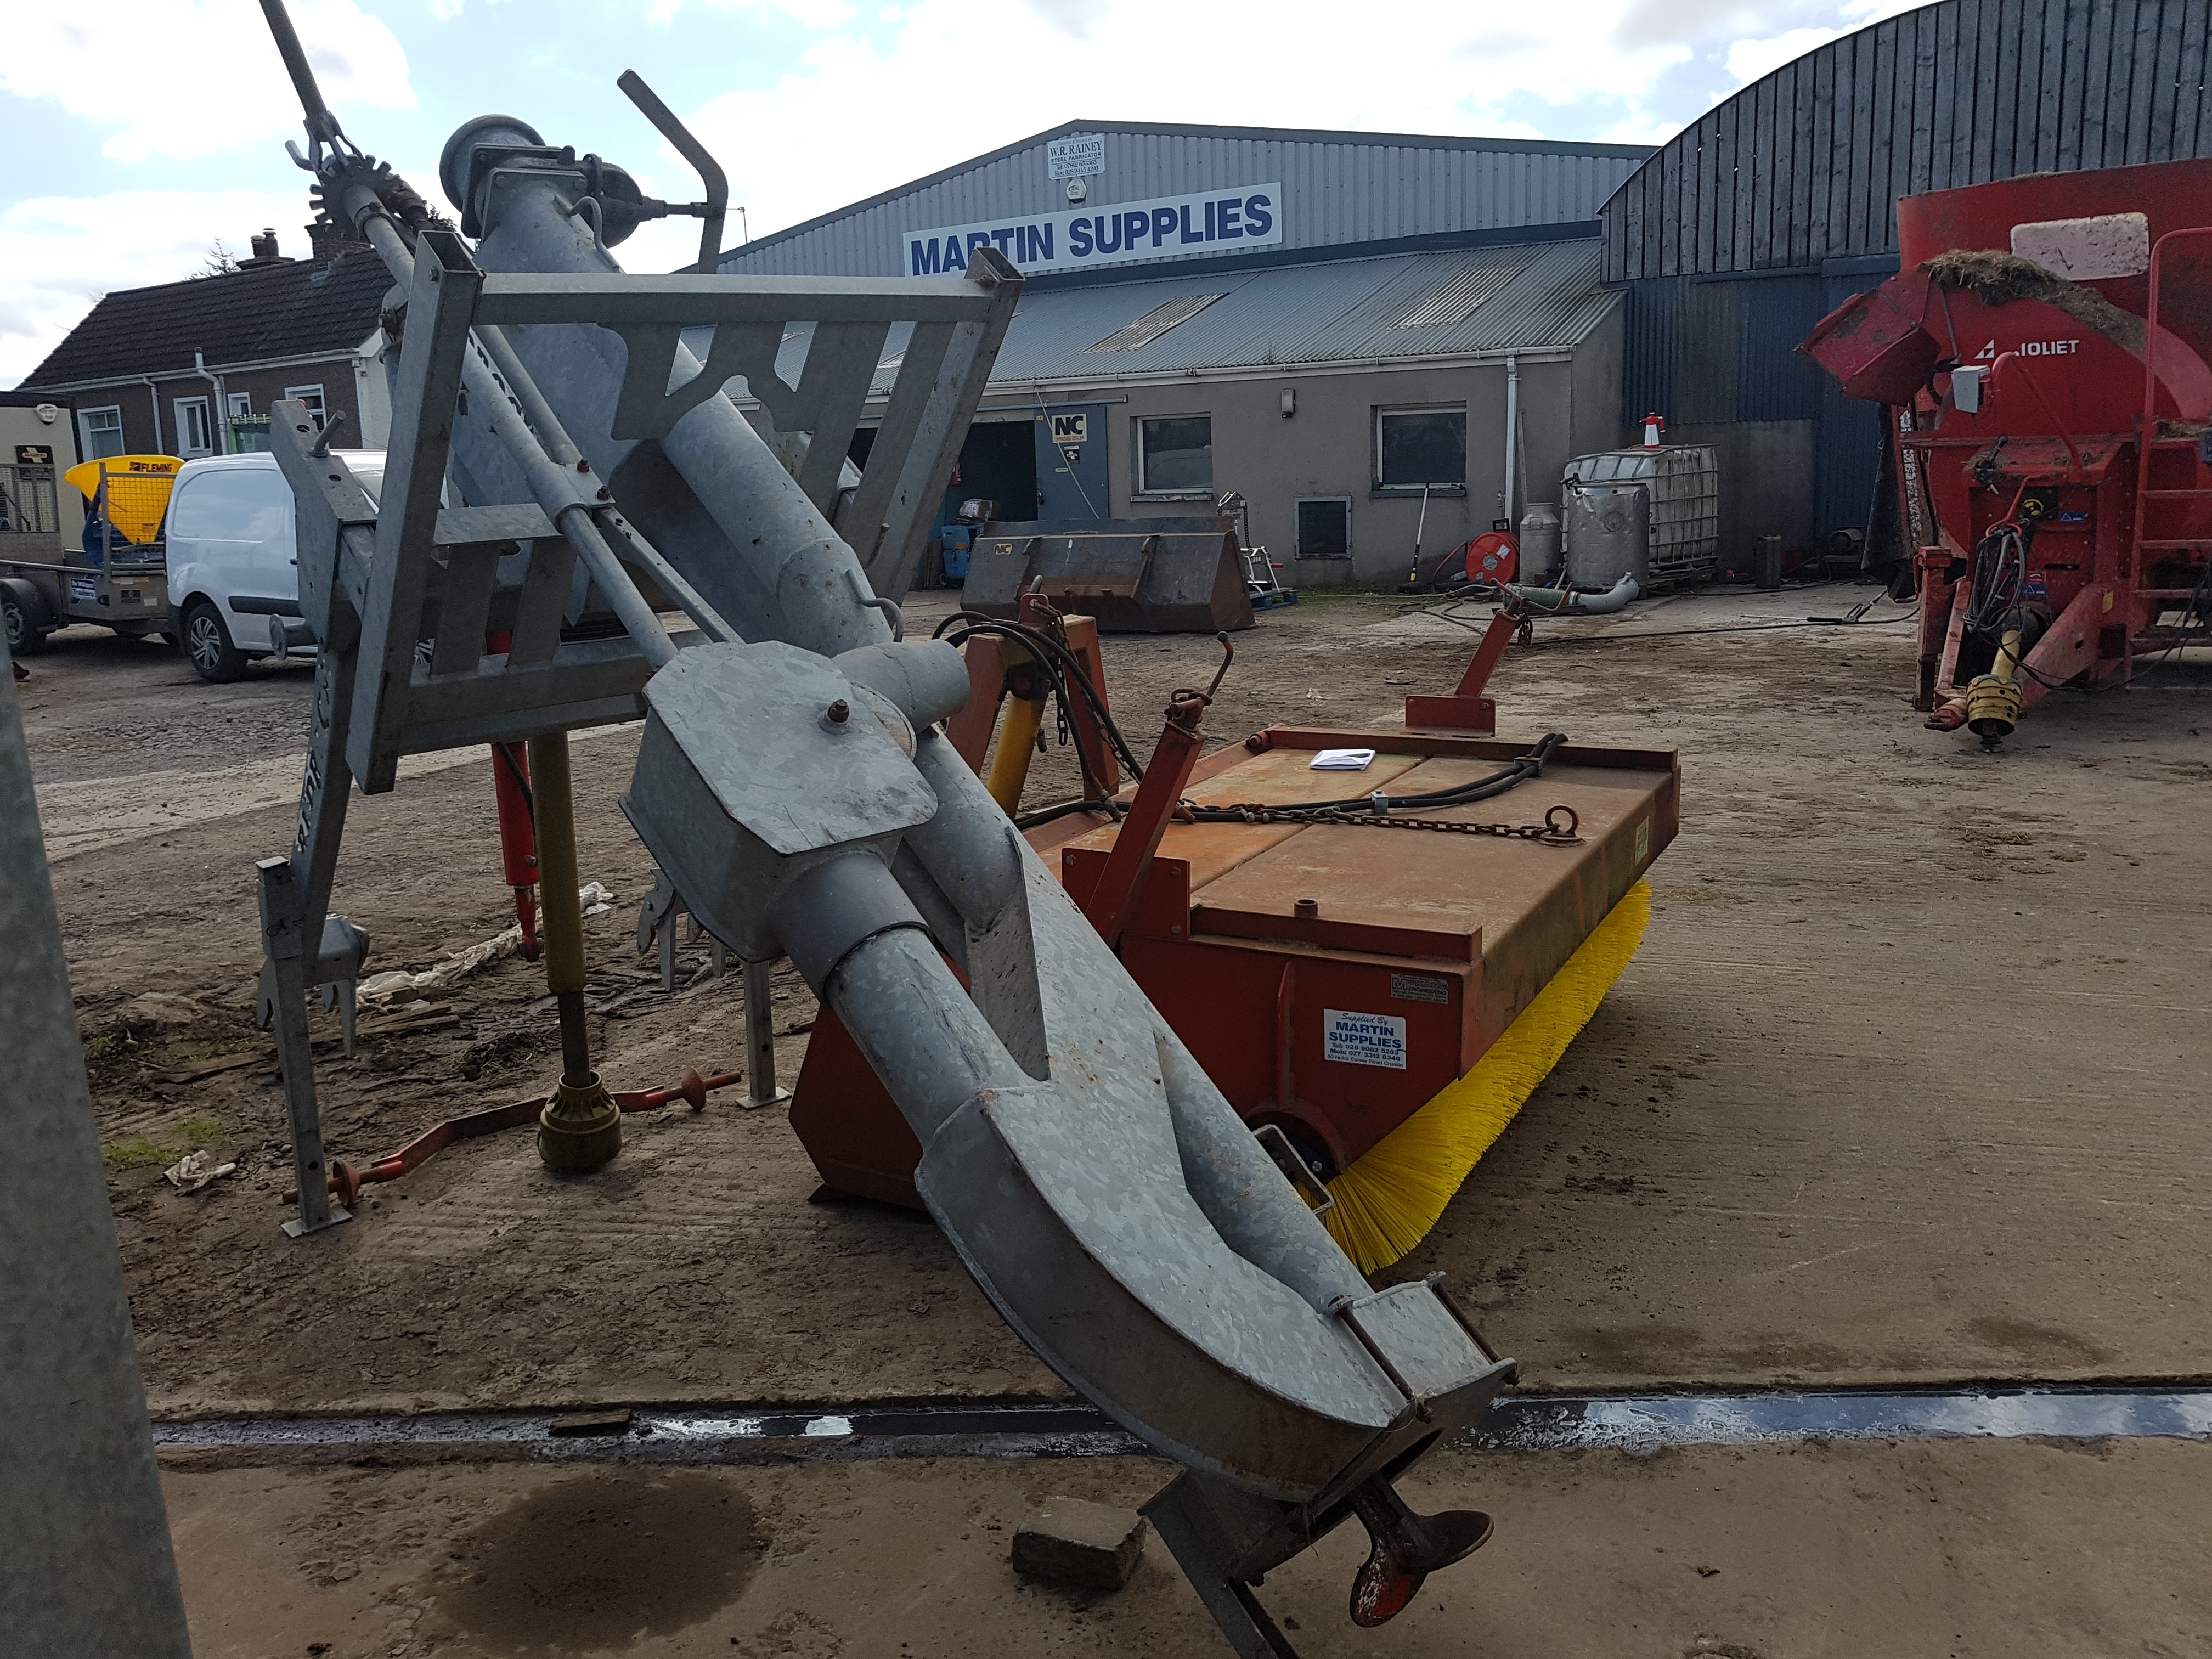 Redrock Slurry Pump (Used) - Martin Supplies